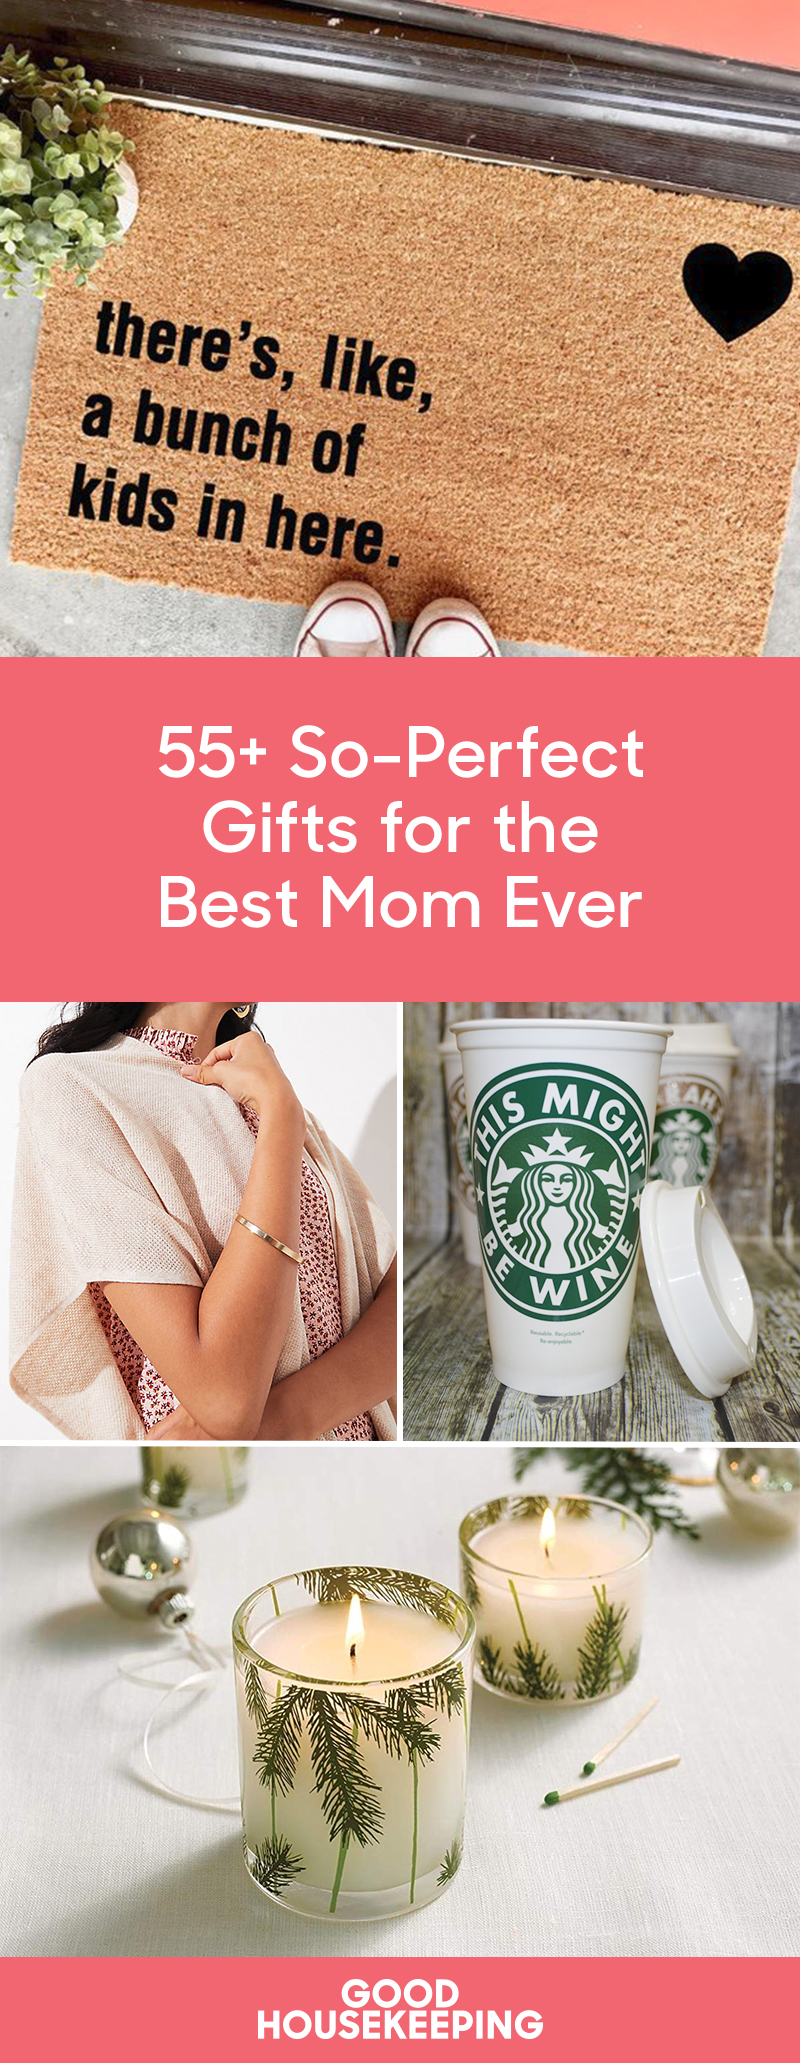 65 Best Holiday Gifts for Mom - Christmas Gift Ideas for Mom